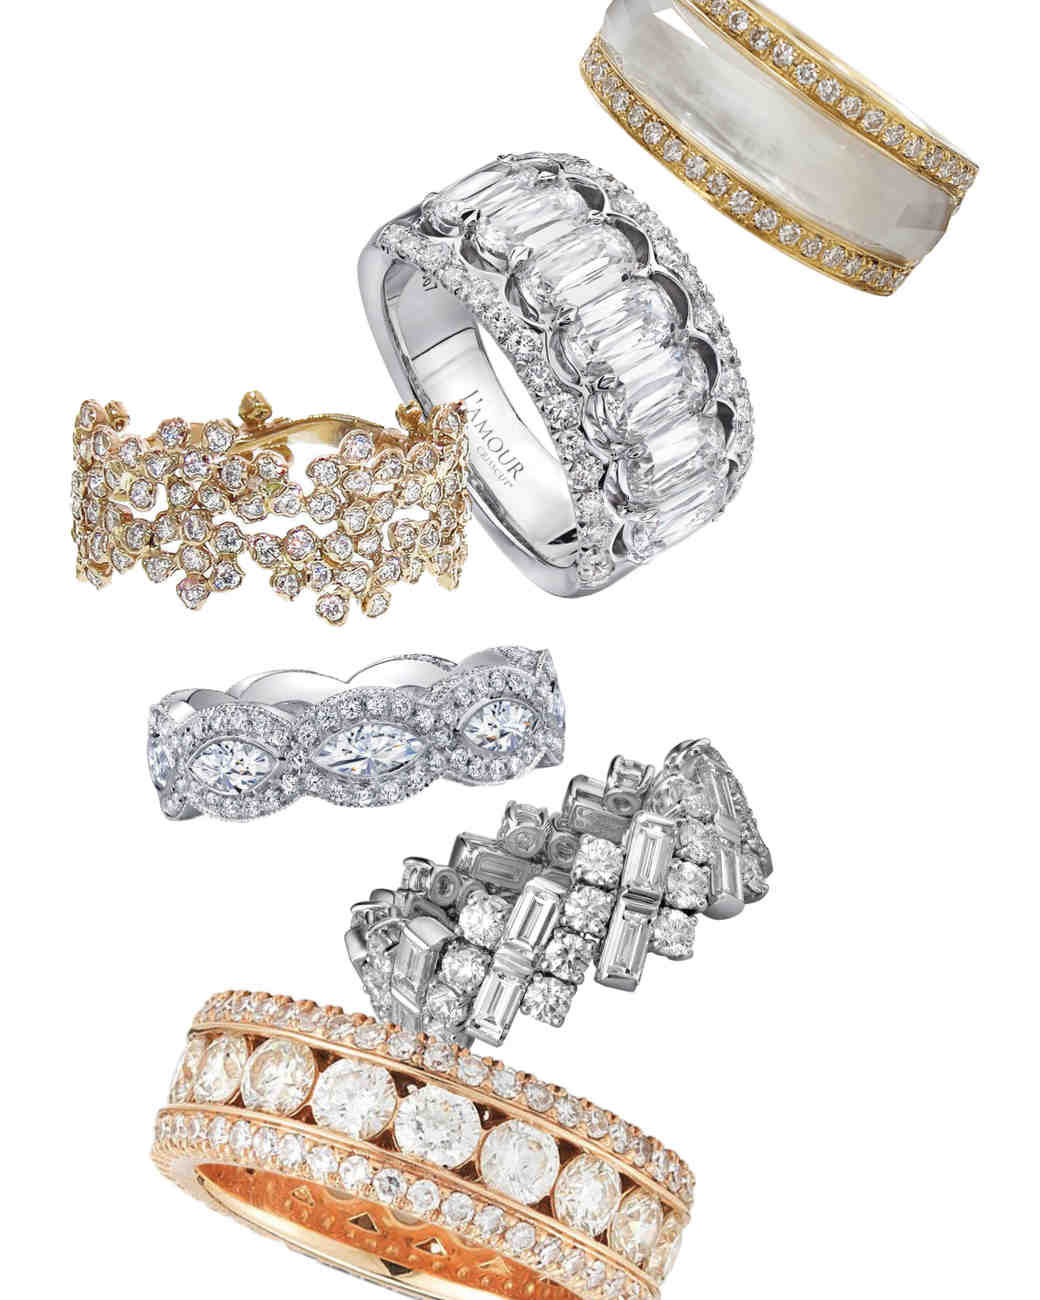 Famous Wide Band Wedding Rings For Her Gift - The Wedding Ideas ...